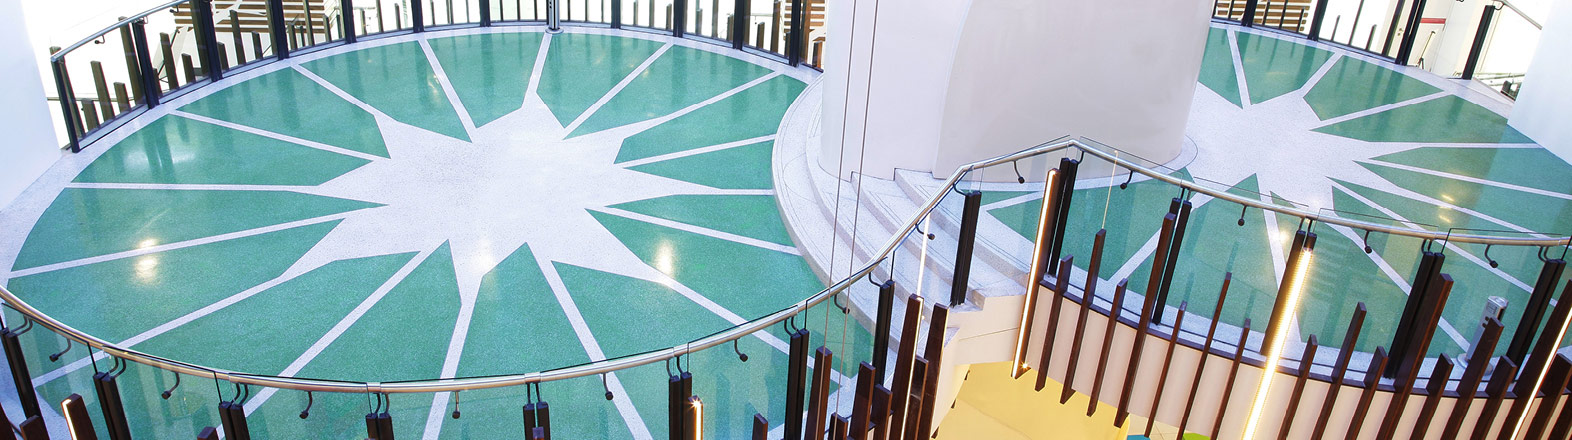 Decorative Flooring Solutions for  Commercial and Public Facilities